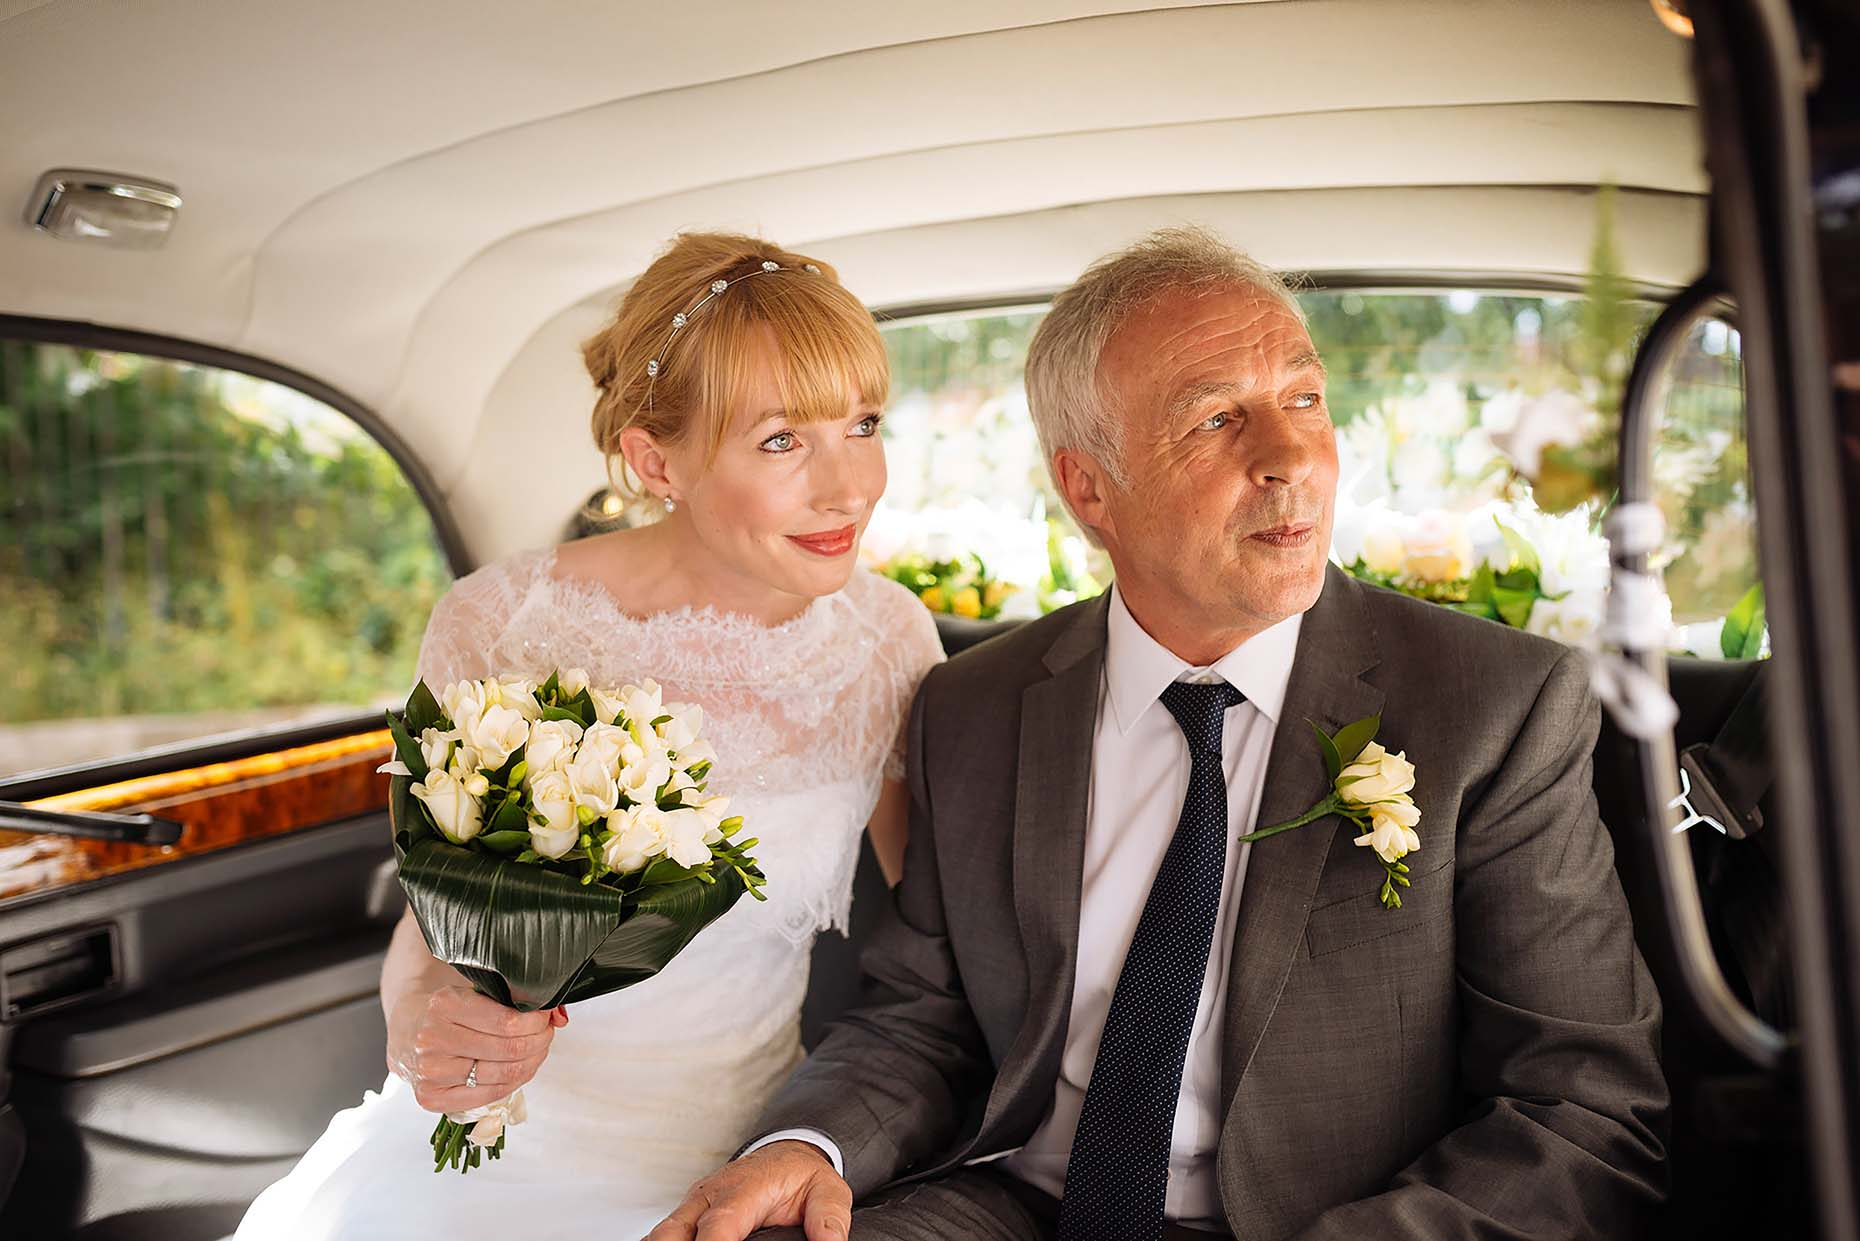 bride-father-car-arriving-church-stoke-newington-town-hall-wedding-photographer-02